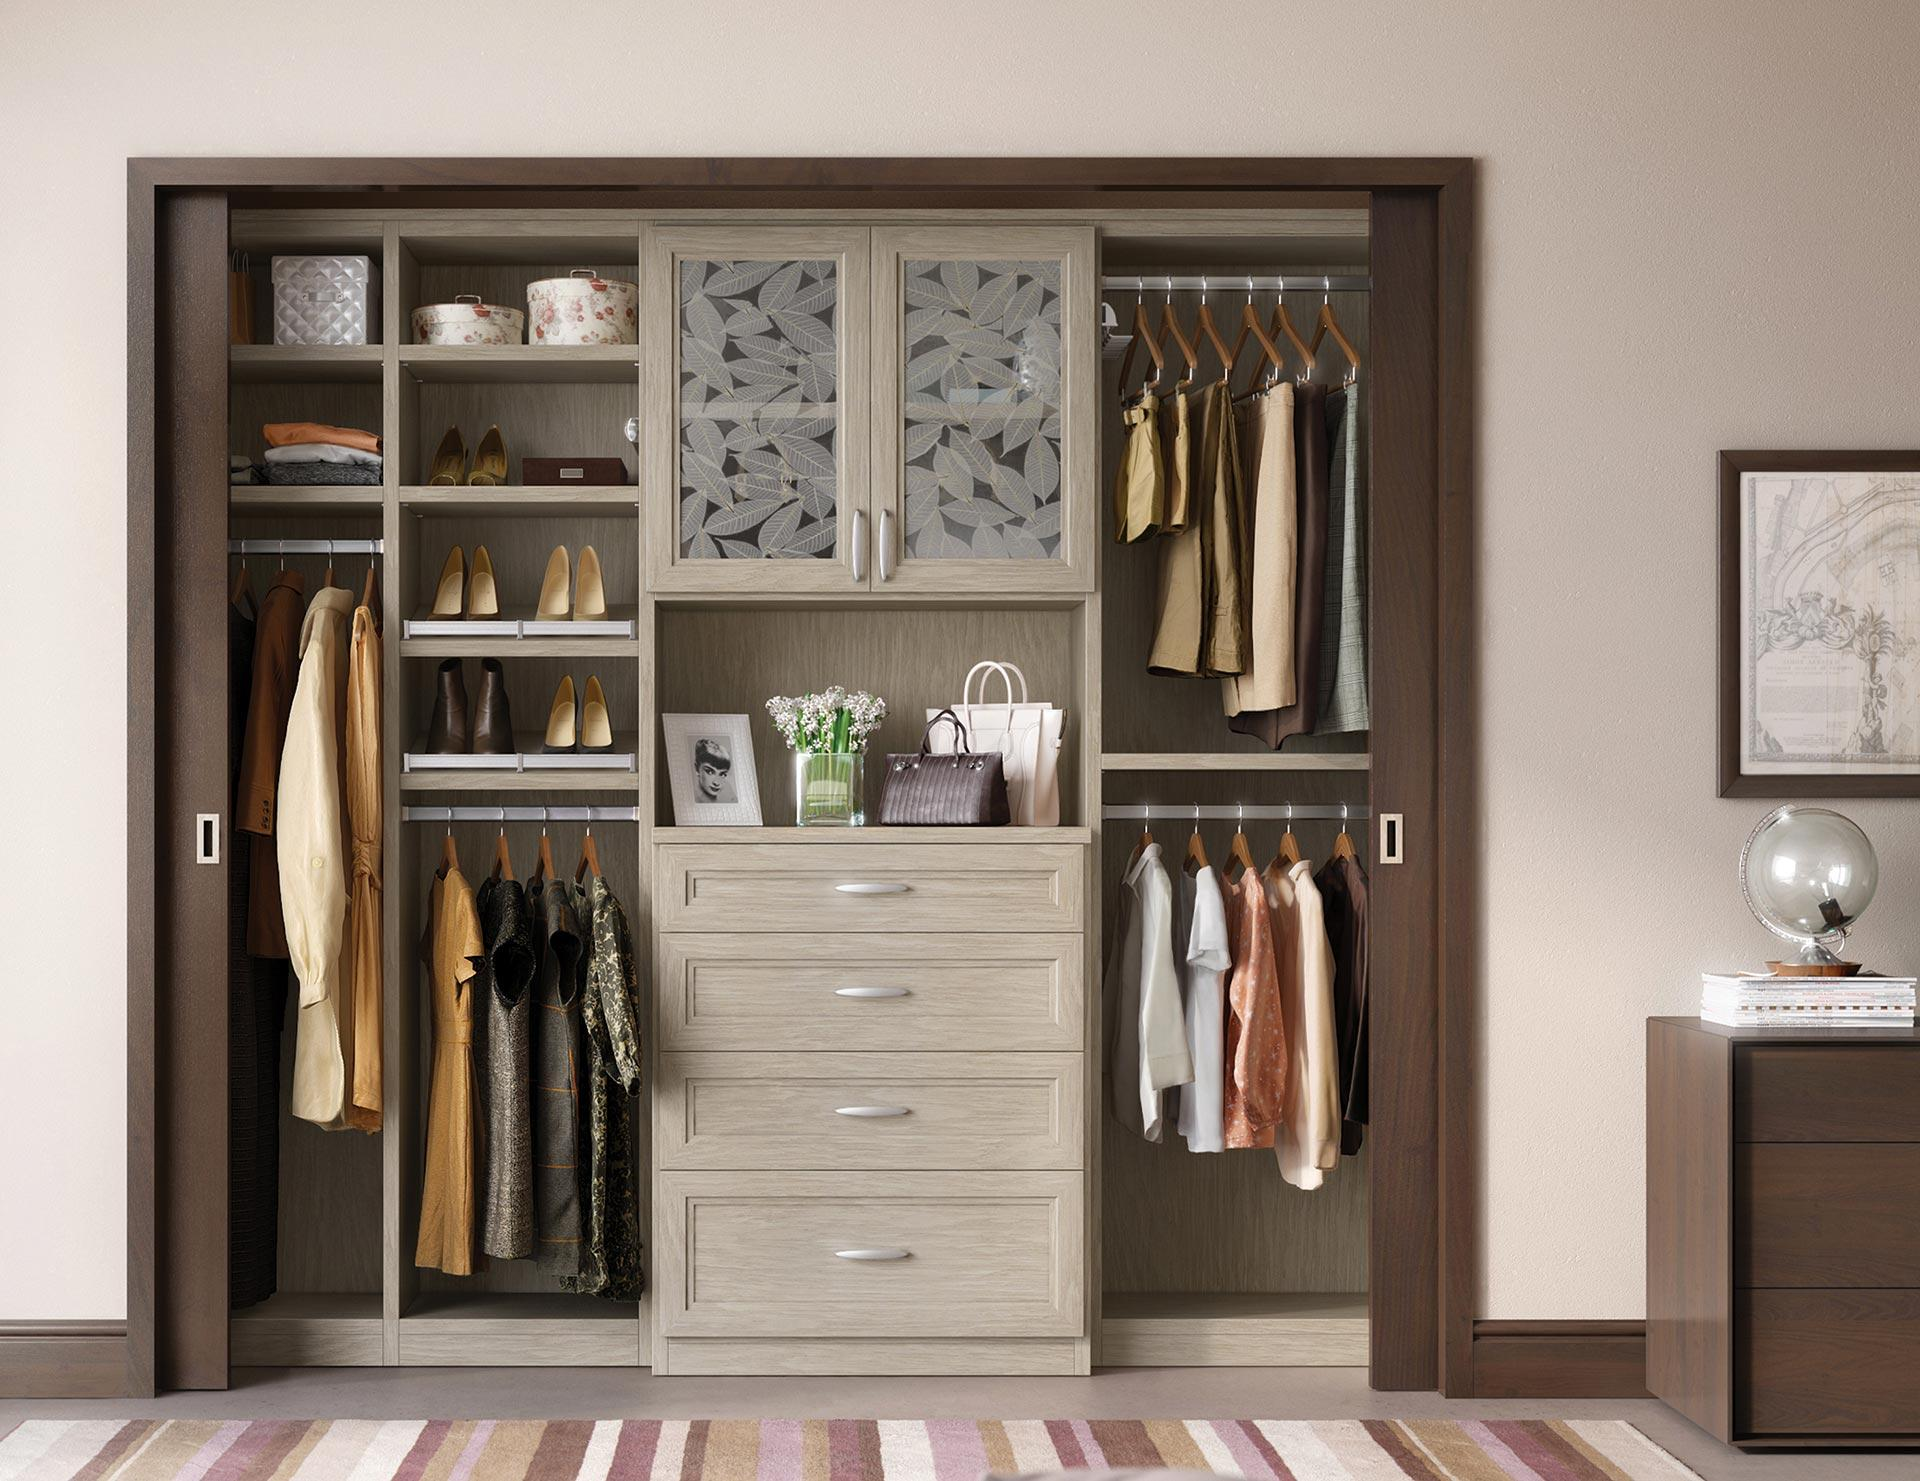 Declutter with great DIY organization ideas. Put your closet or garage in order with great tips and solutions to organize any space, big or large.